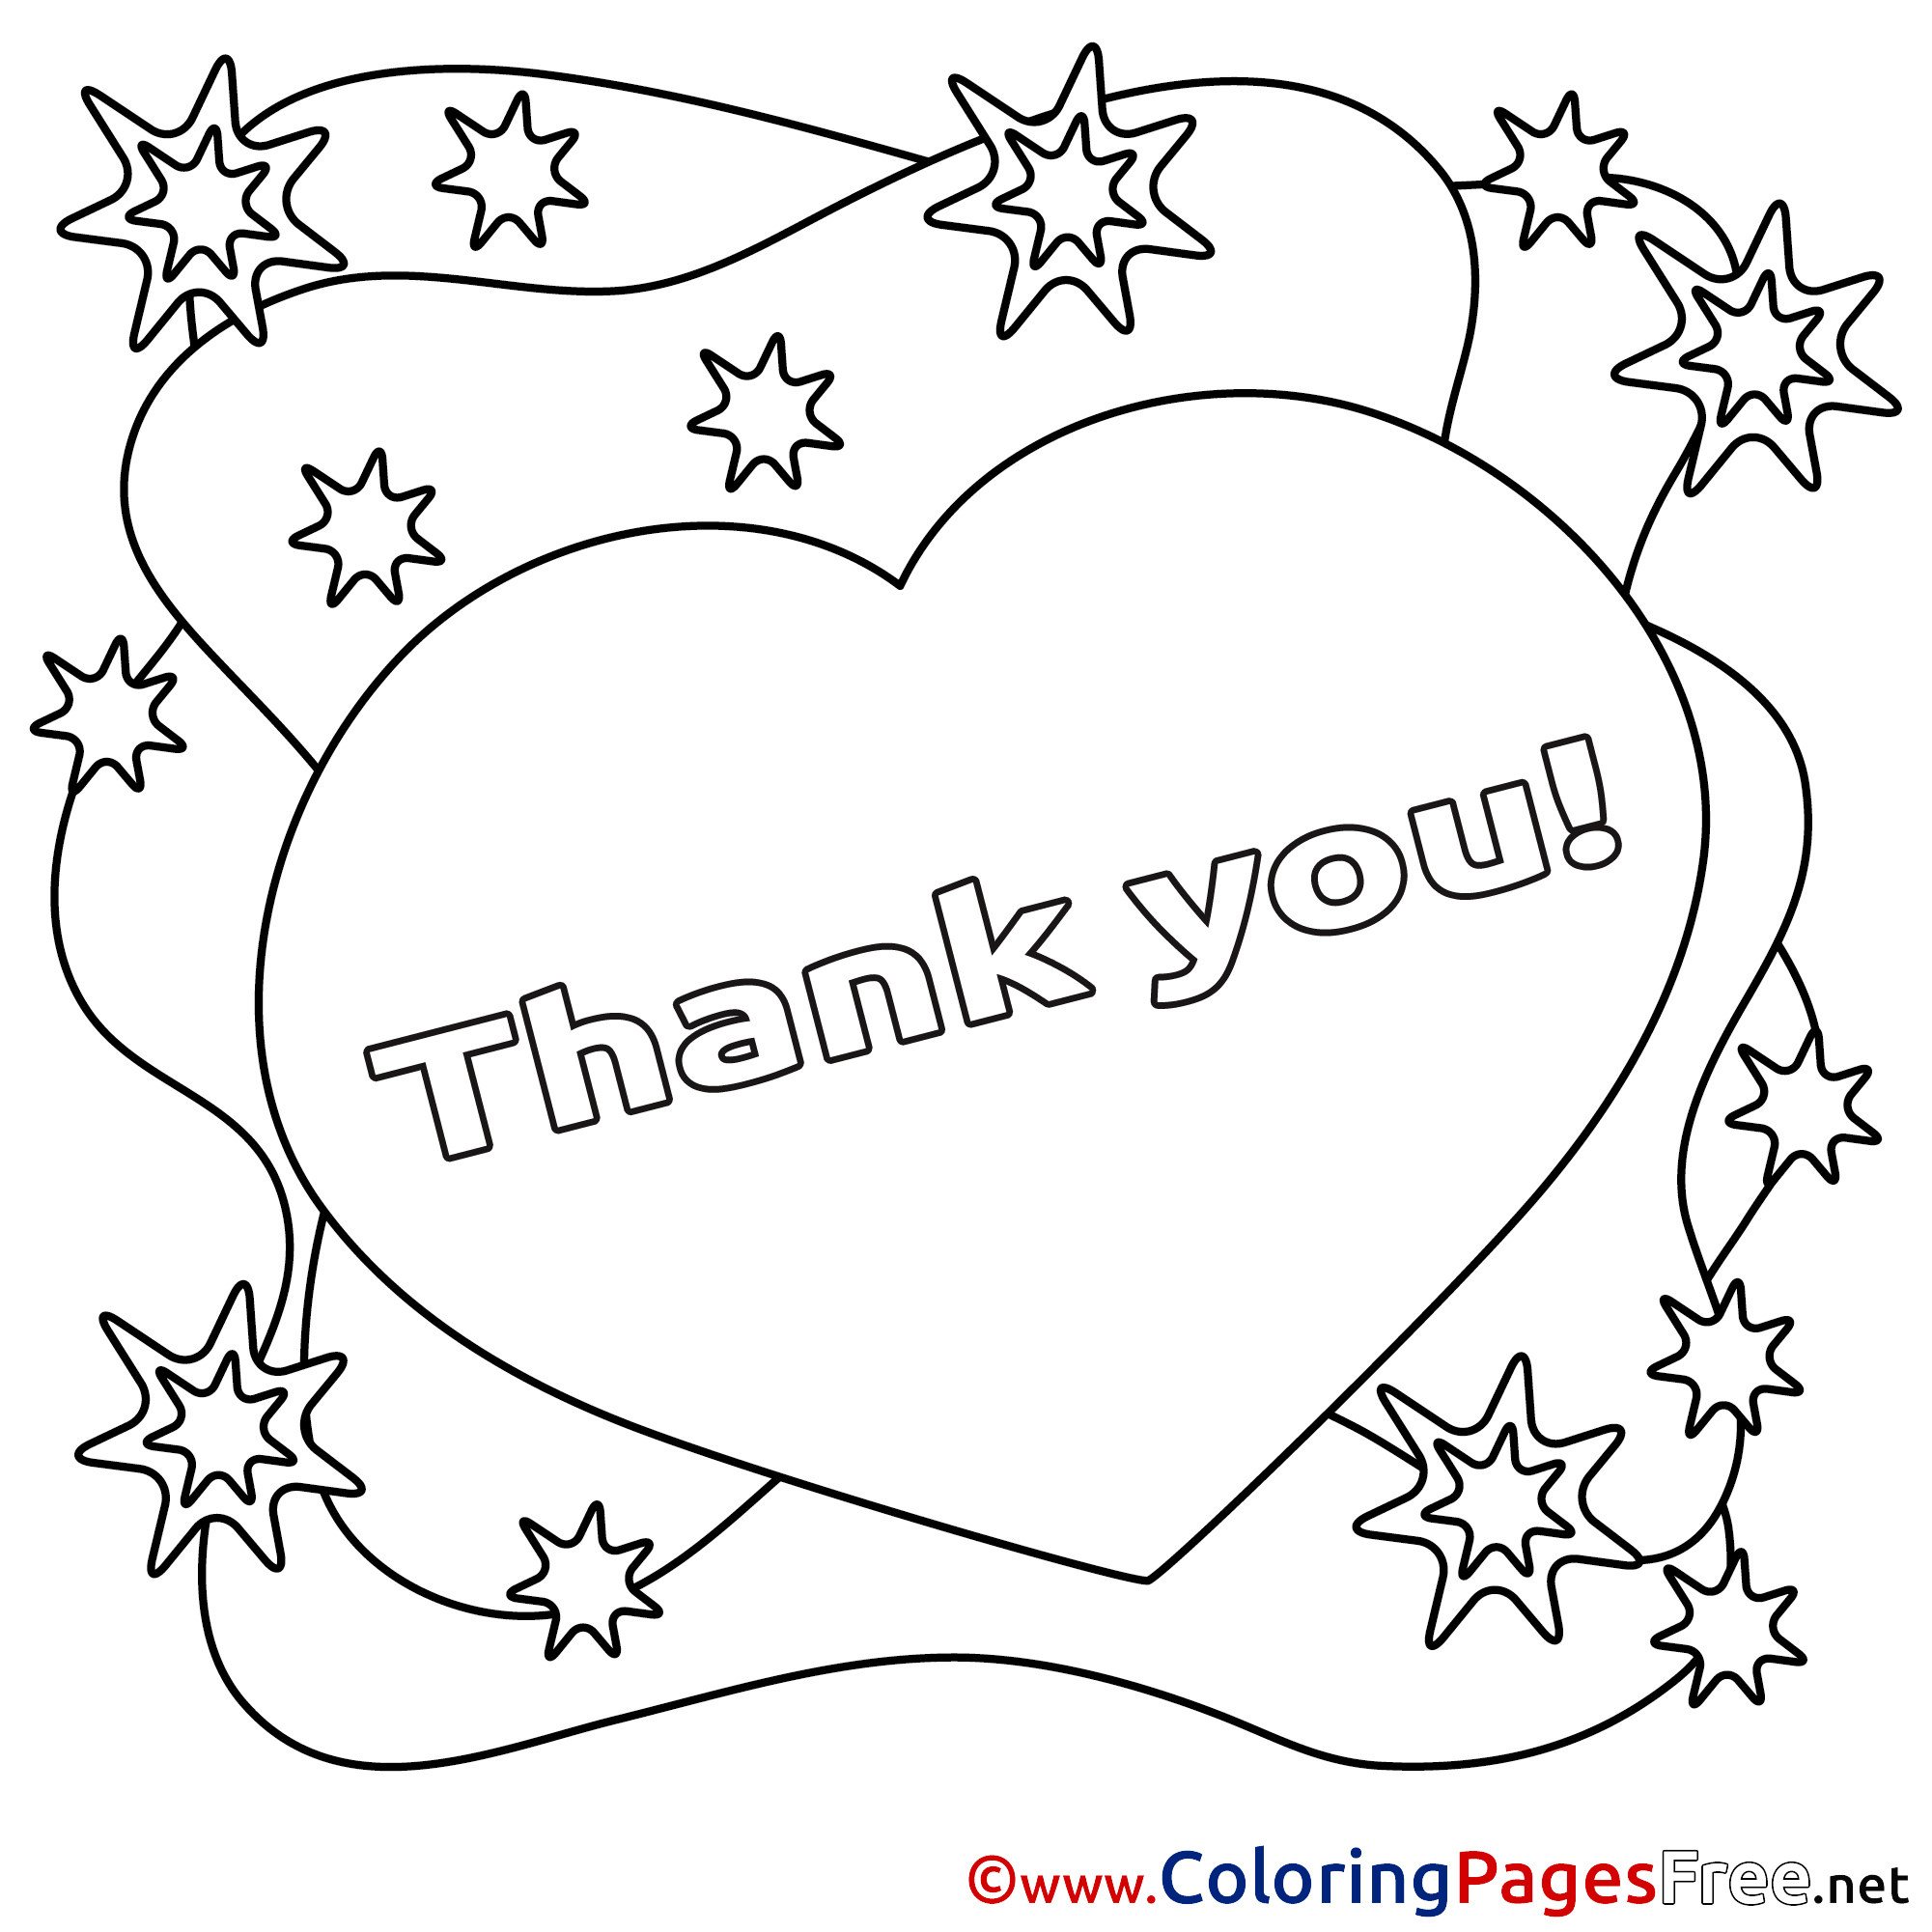 free thank you coloring pages heart printable coloring pages thank you coloring pages thank you free